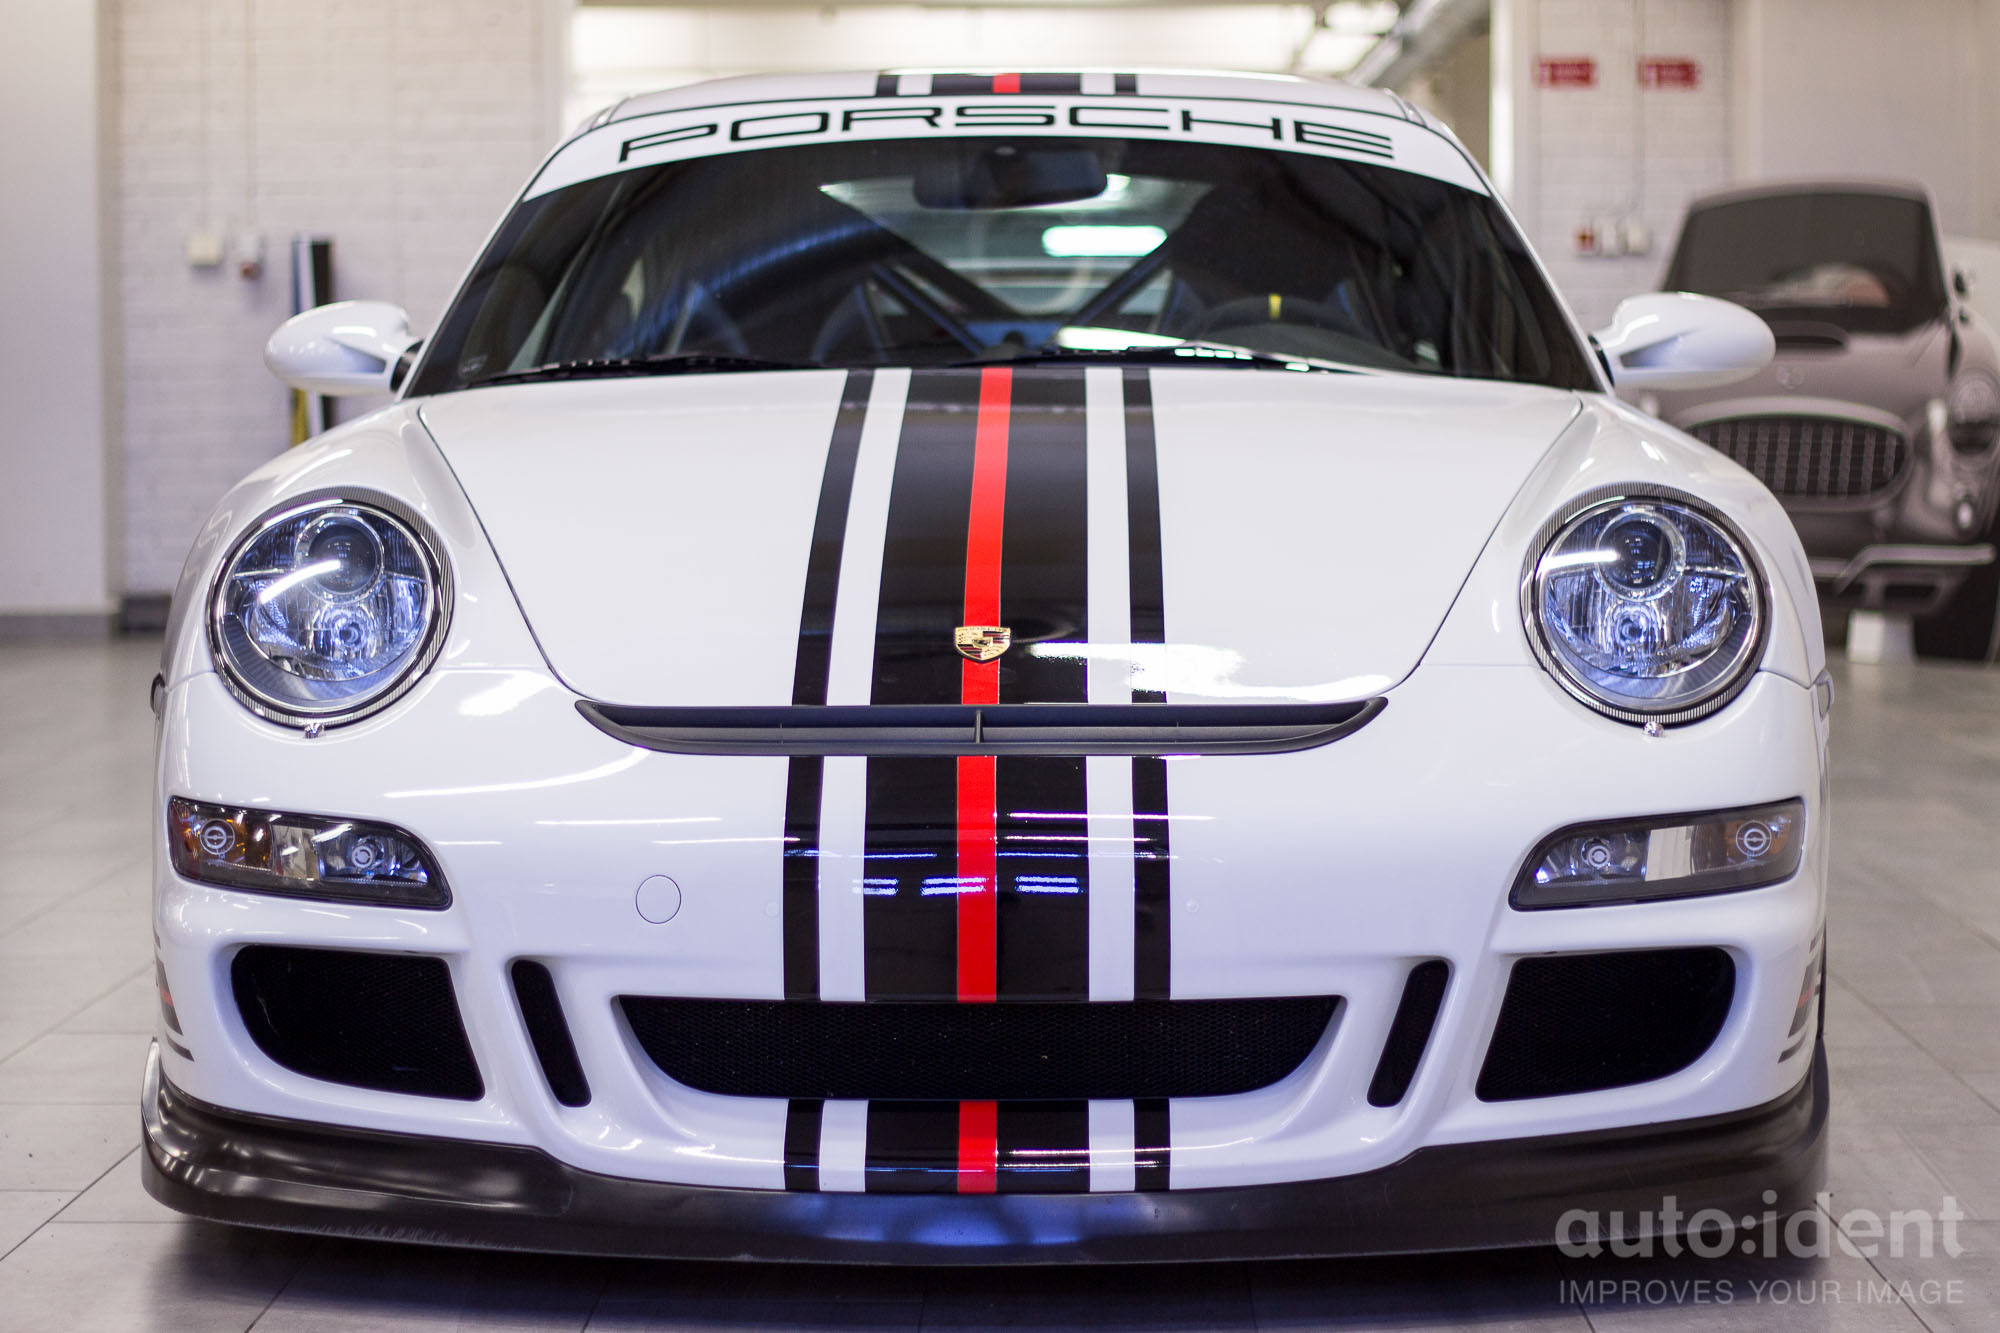 Porsche 911 Gt3 White With Black And Red Stripes Autoident